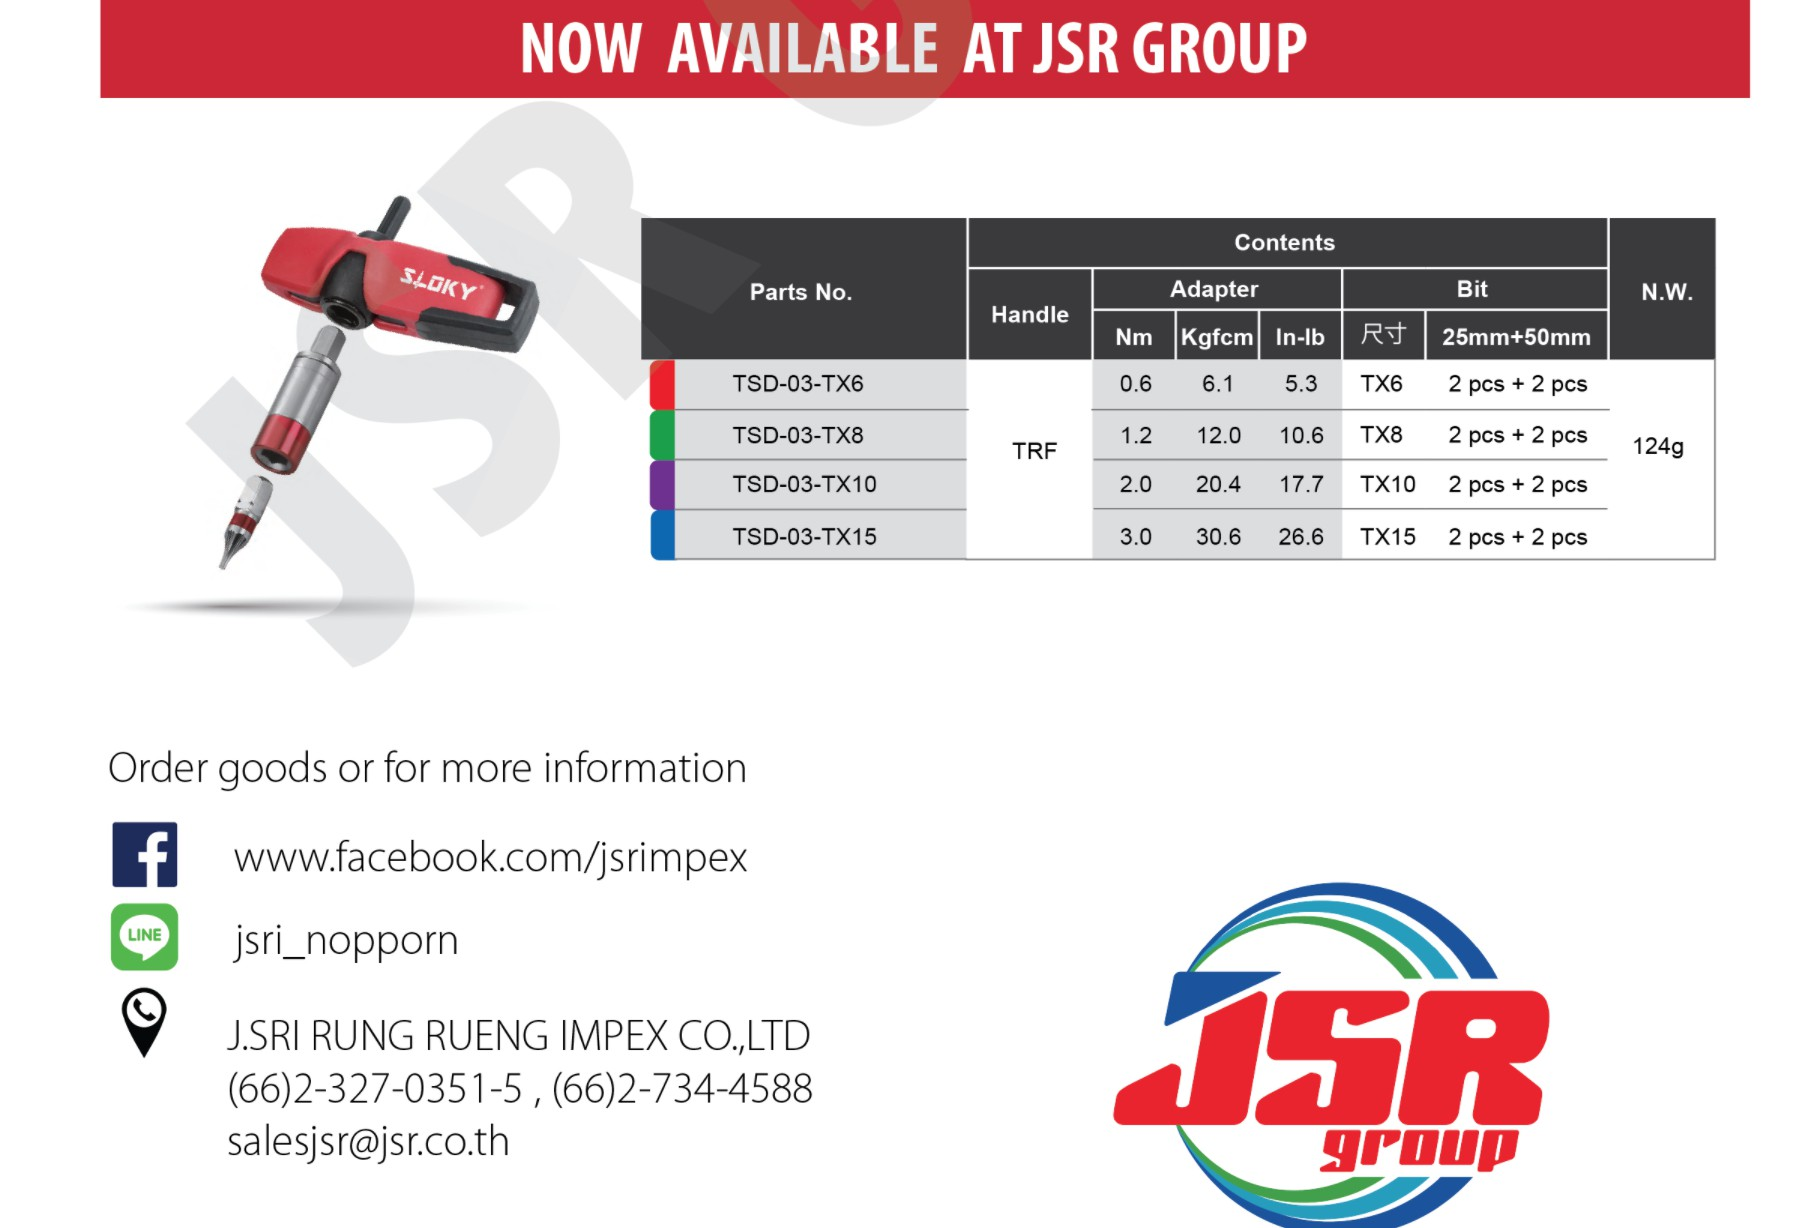 Sloky torque screwdriver promoted by JSR Group in Thailand; originally designed for CNC cutting tools of precision machining and milling.